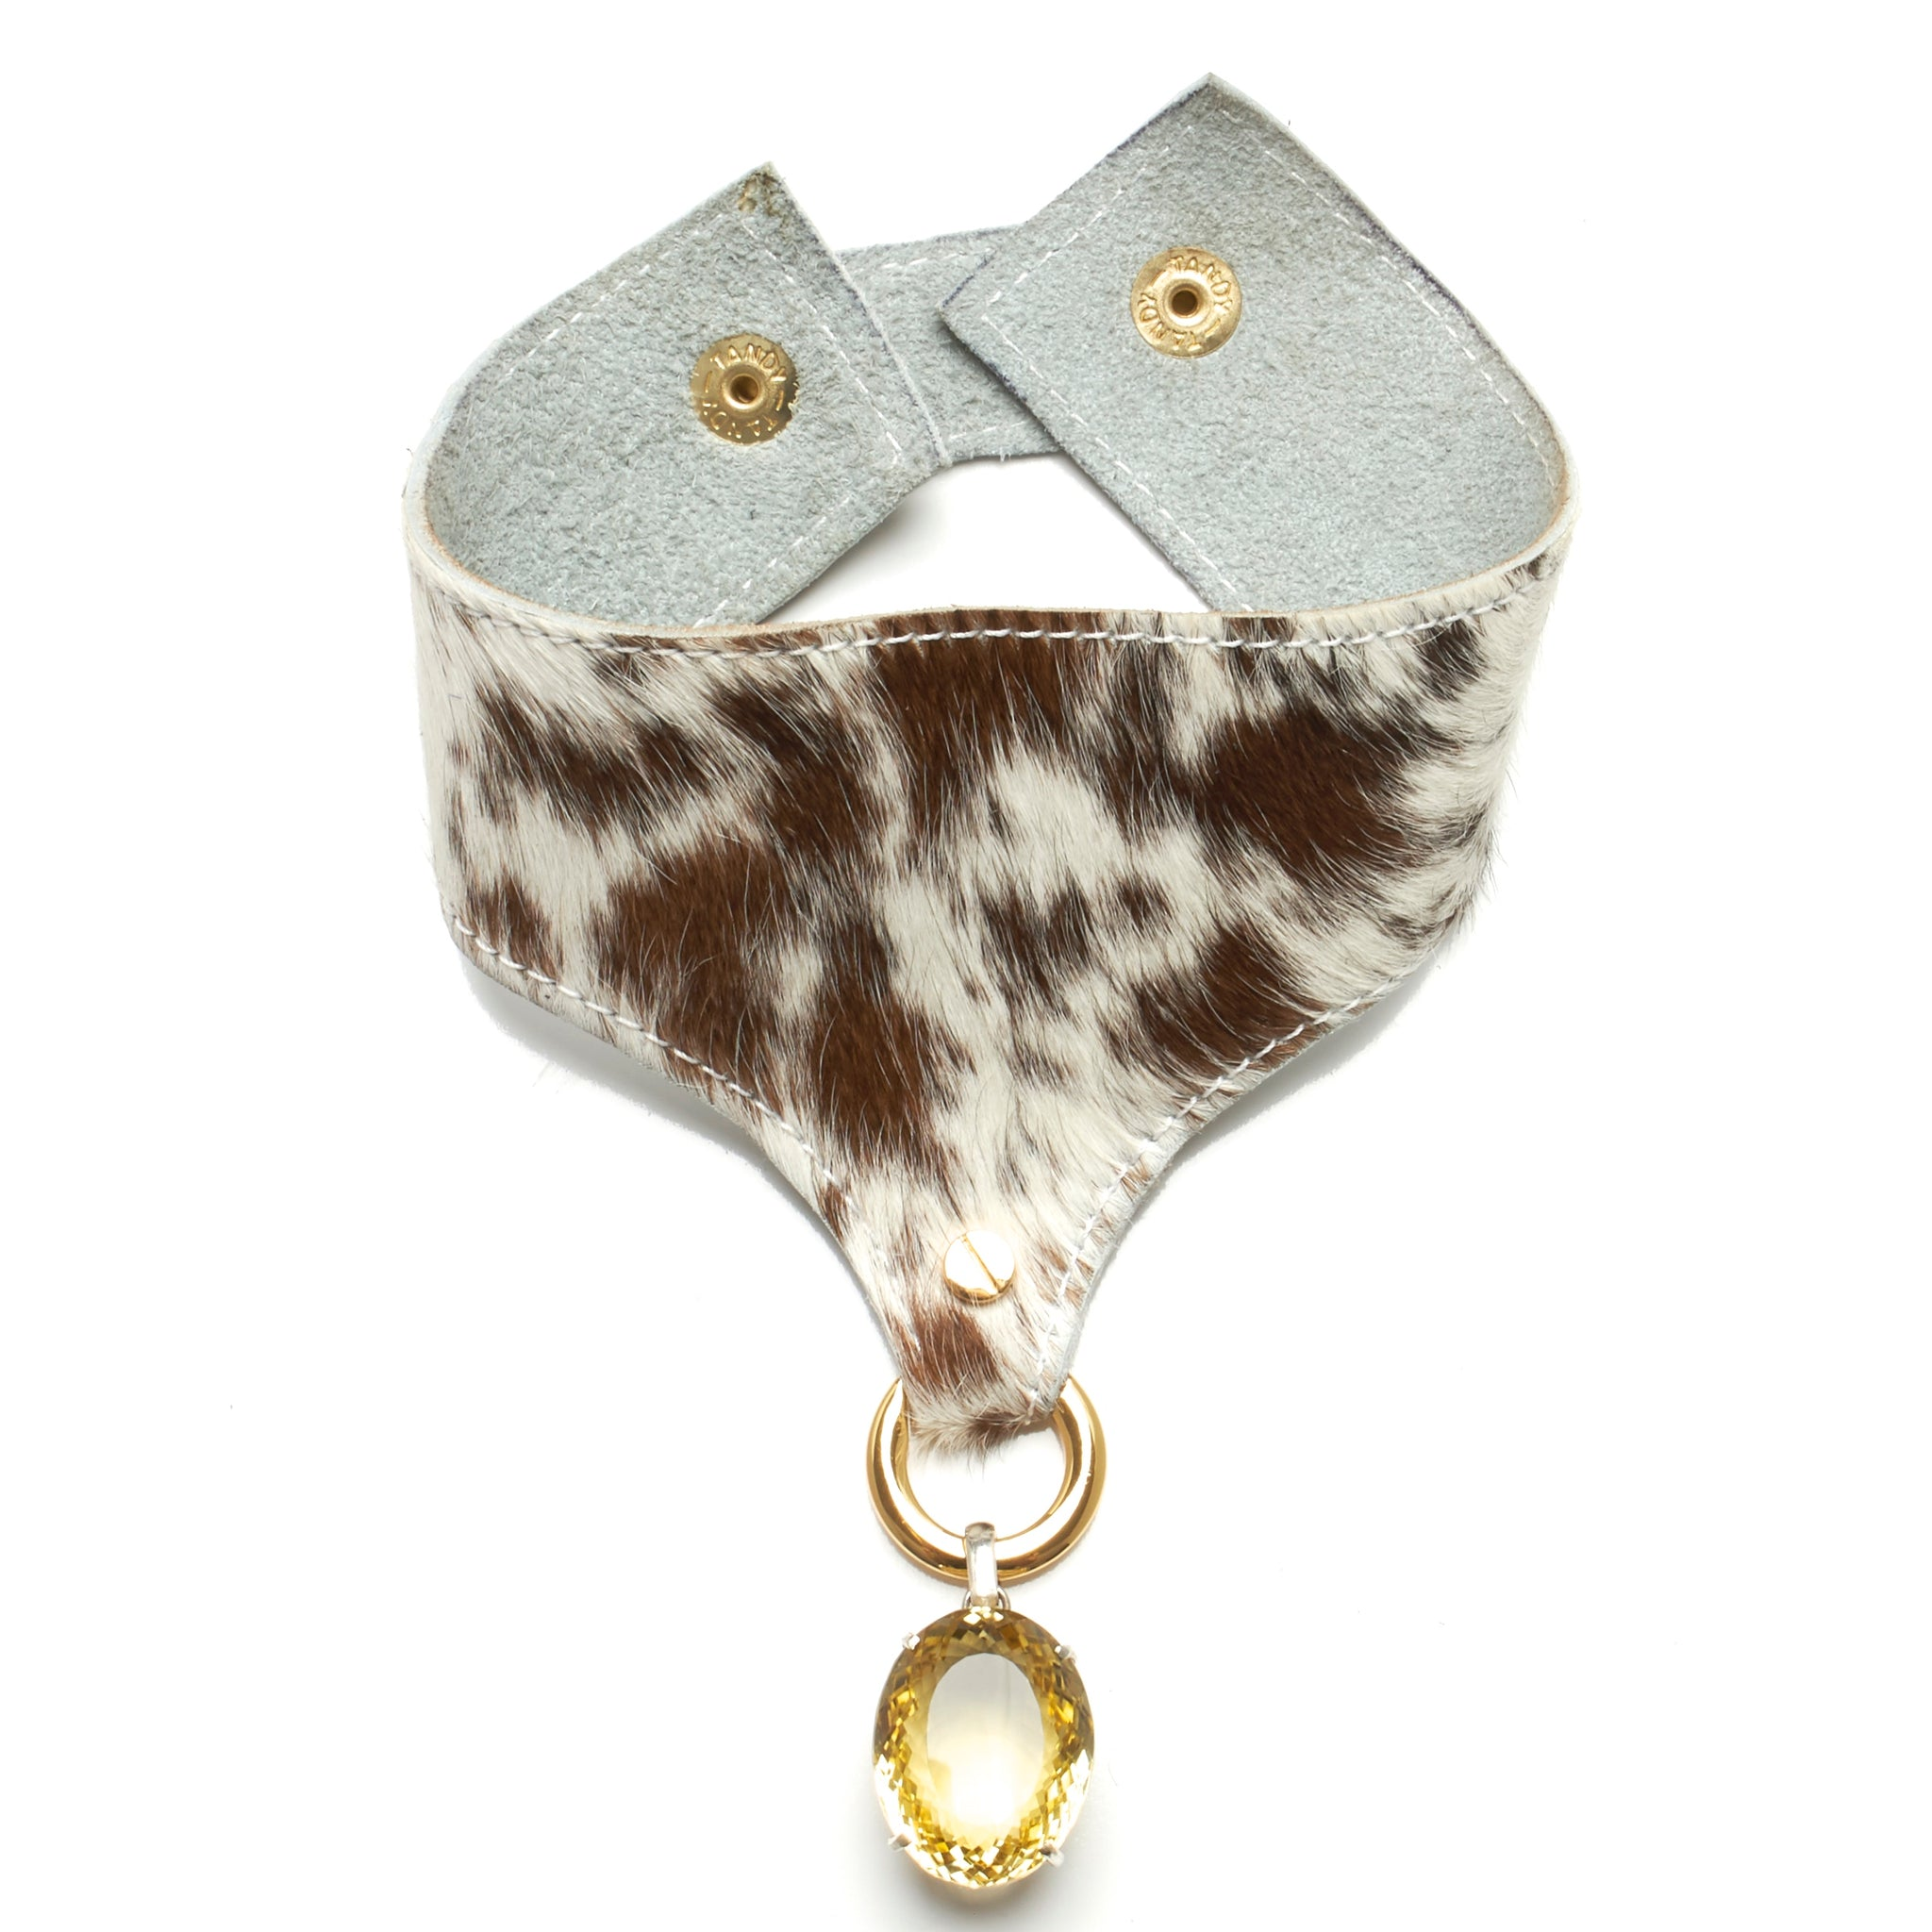 WIDE HAIR-ON COWHIDE CHOKER WITH LARGE SILVER PENDANT WITH FACETED CITRINE STONE. BY NYET JEWELRY.